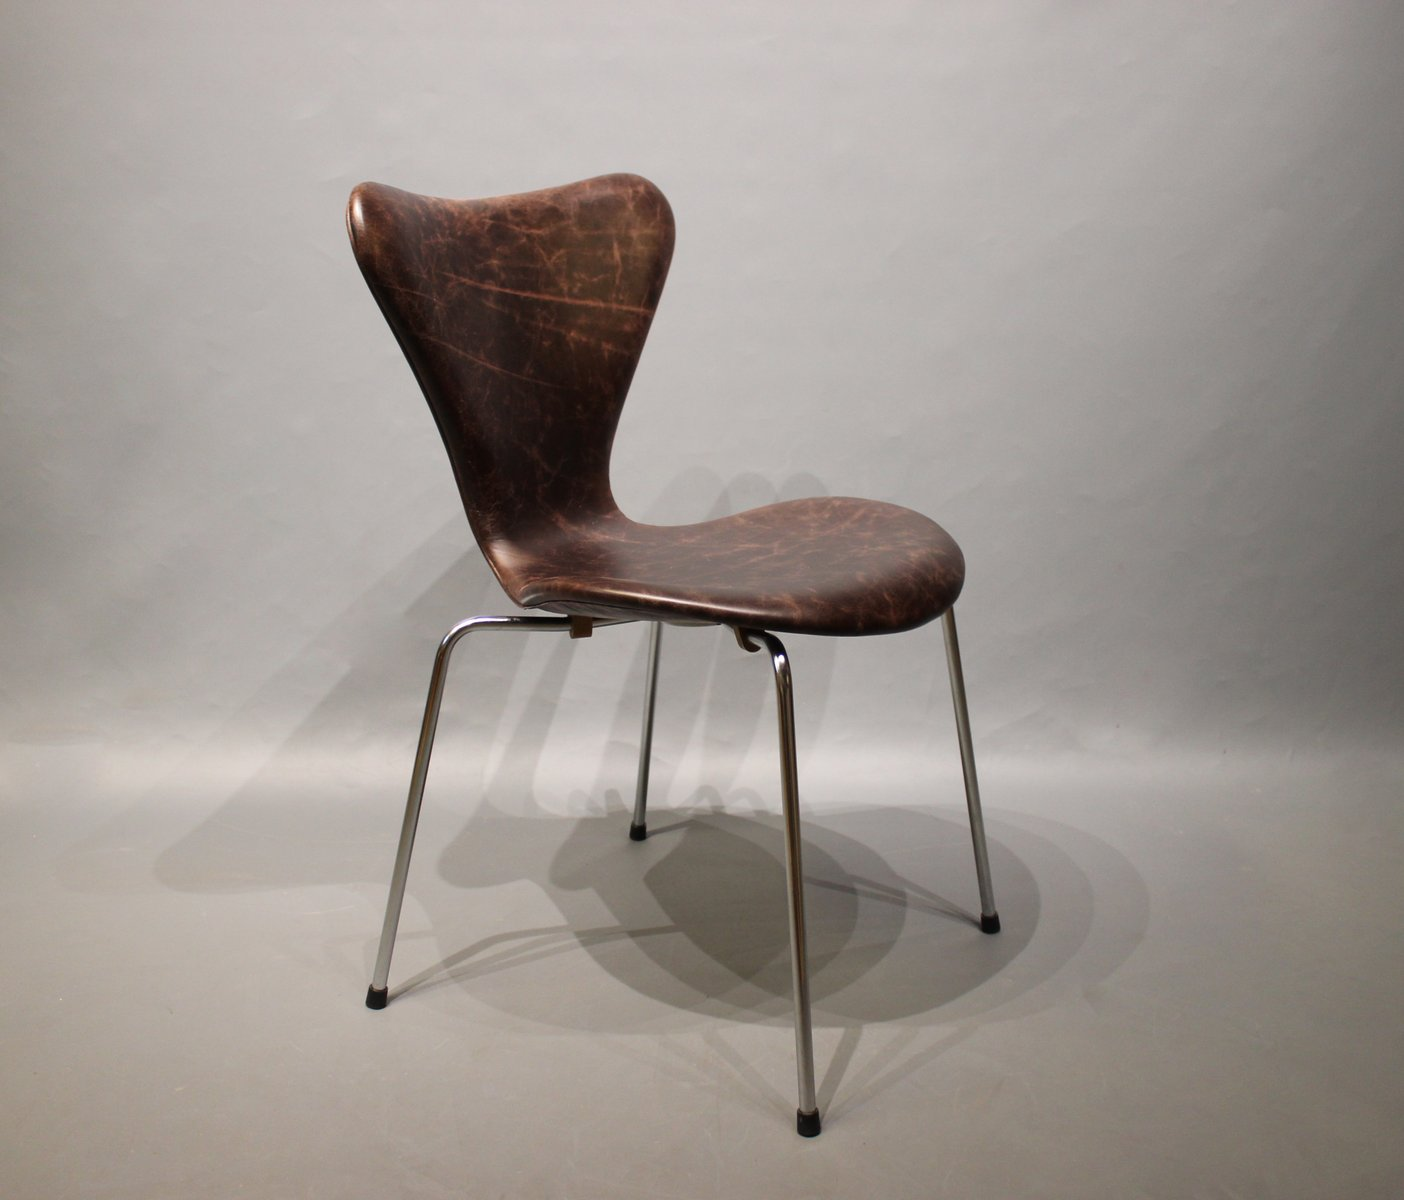 Model 3107 Chair By Arne Jacobsen From Fritz Hansen 1960s